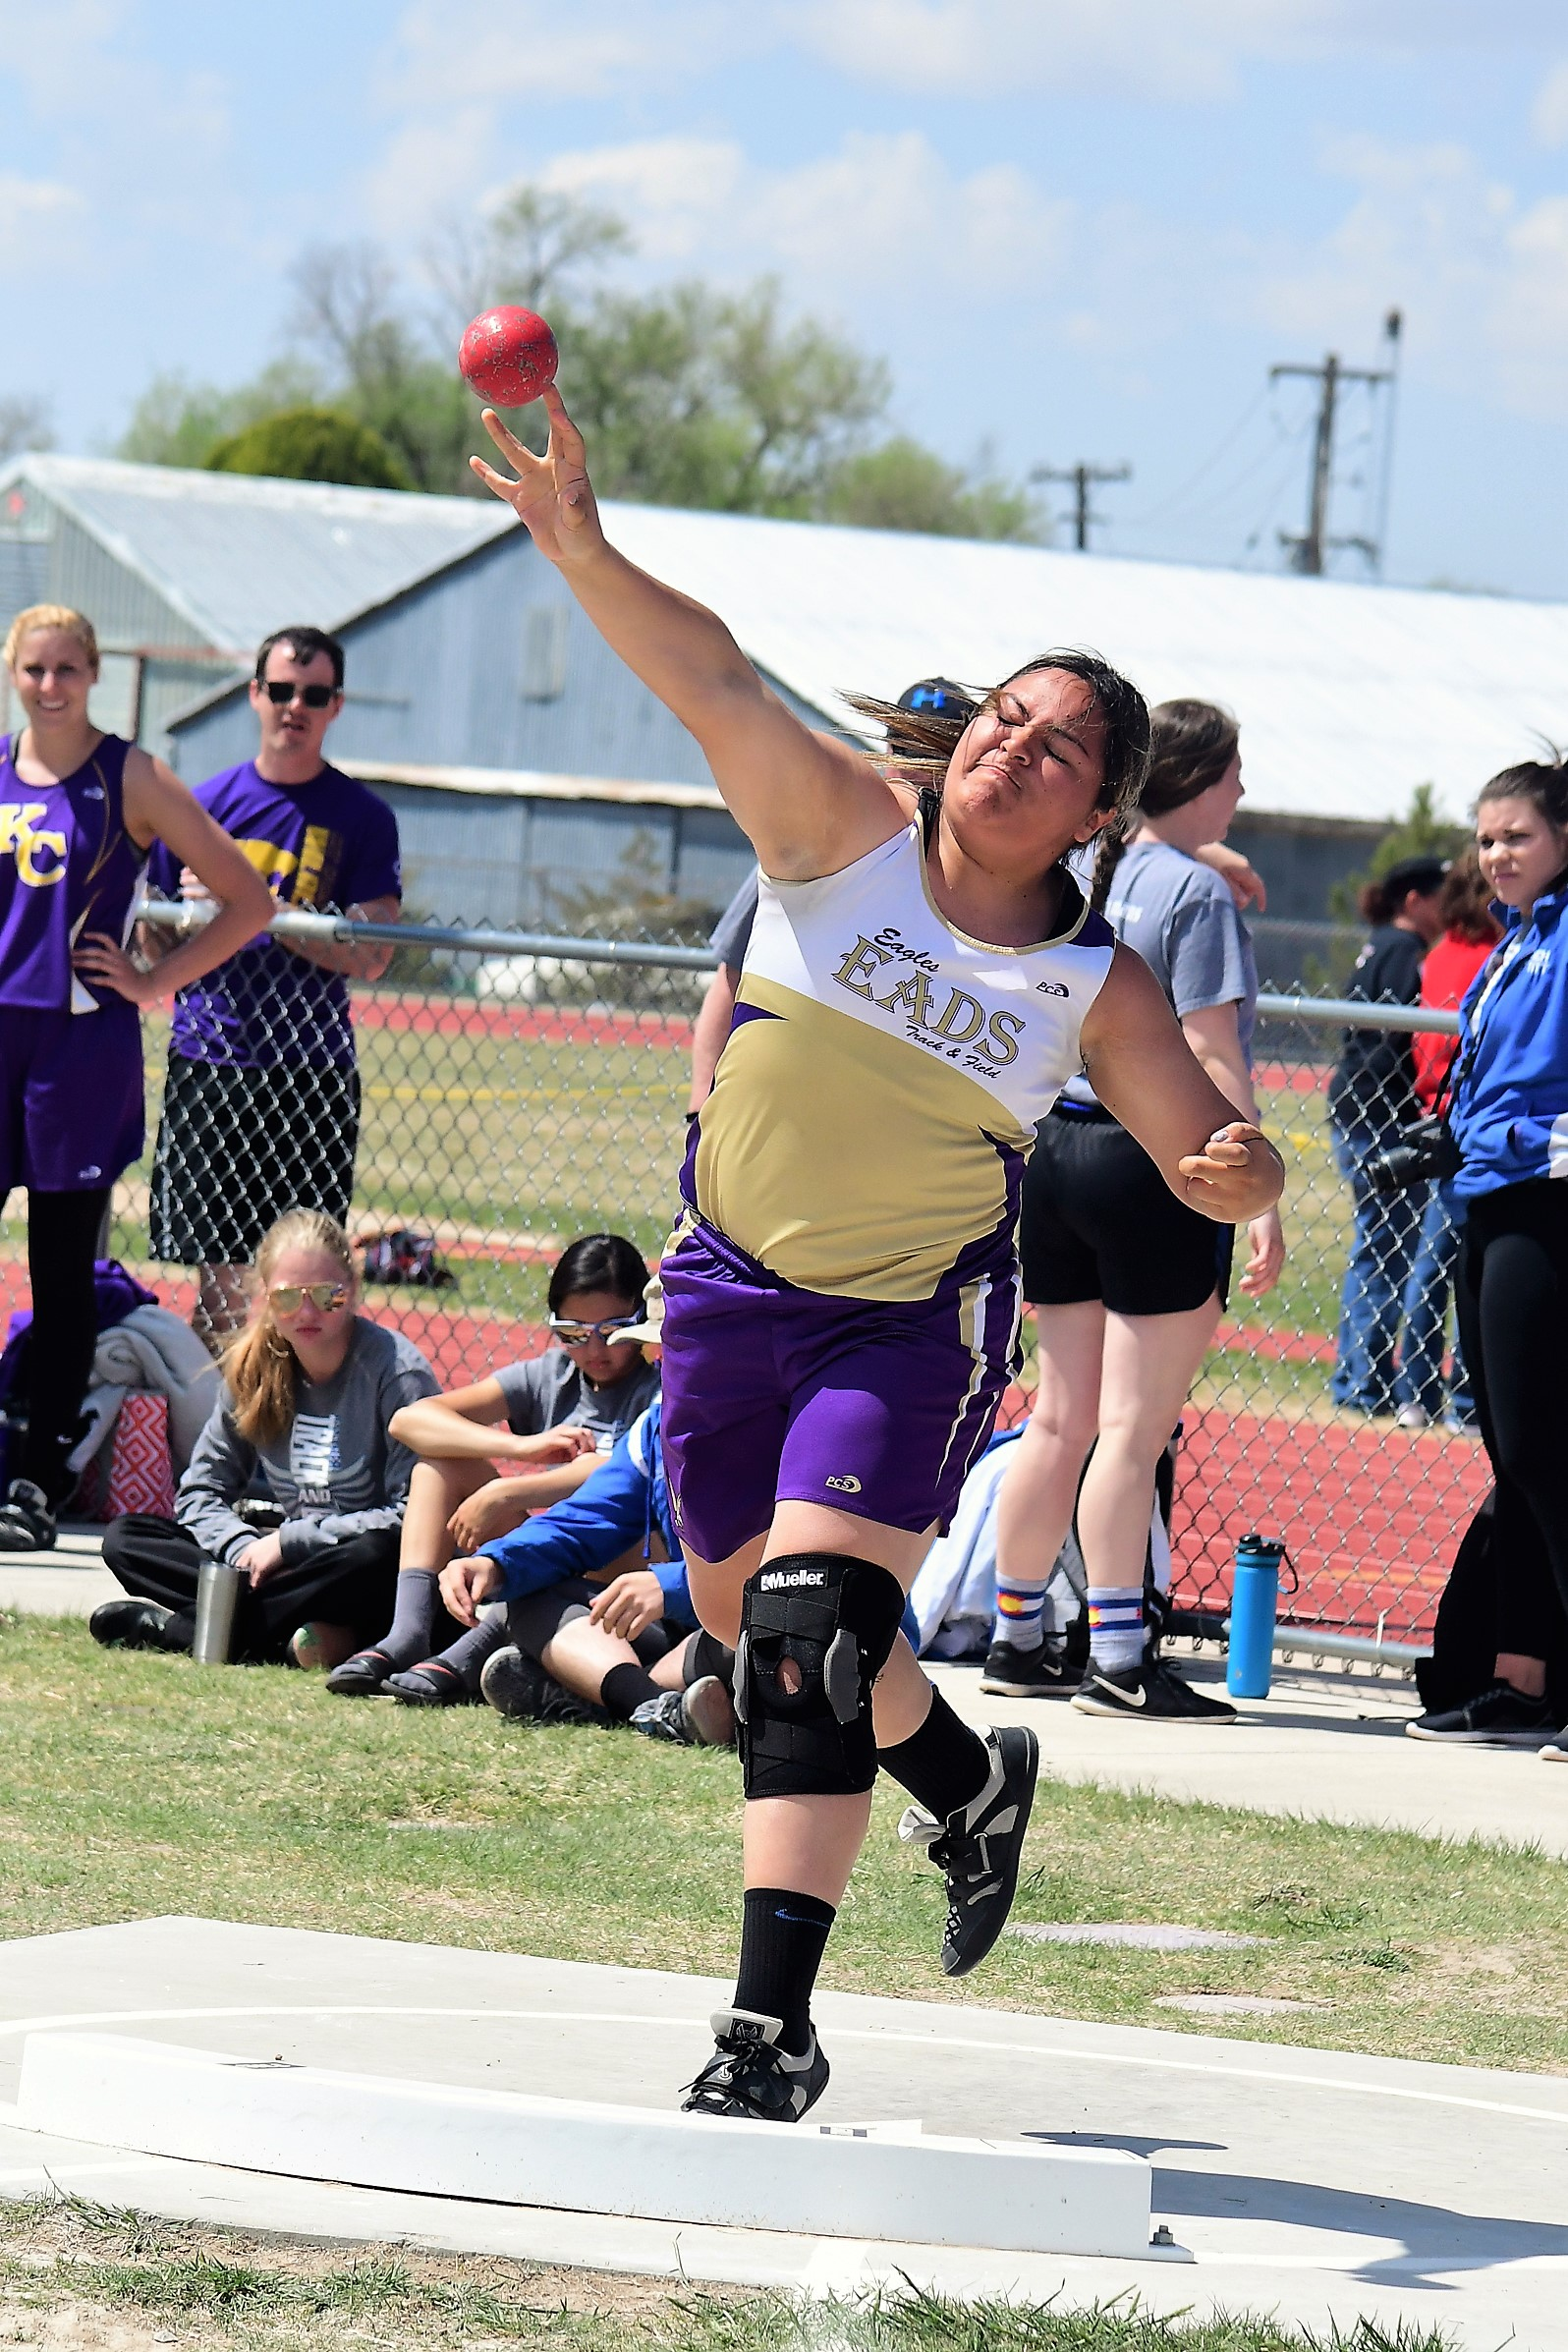 Eads Colby Stoker sends her best shot put toss of the season off in Limon.  The freshman battled through injury and finally came back into form just in time to qualify for state.  (Photo credit: Bob Schecter)